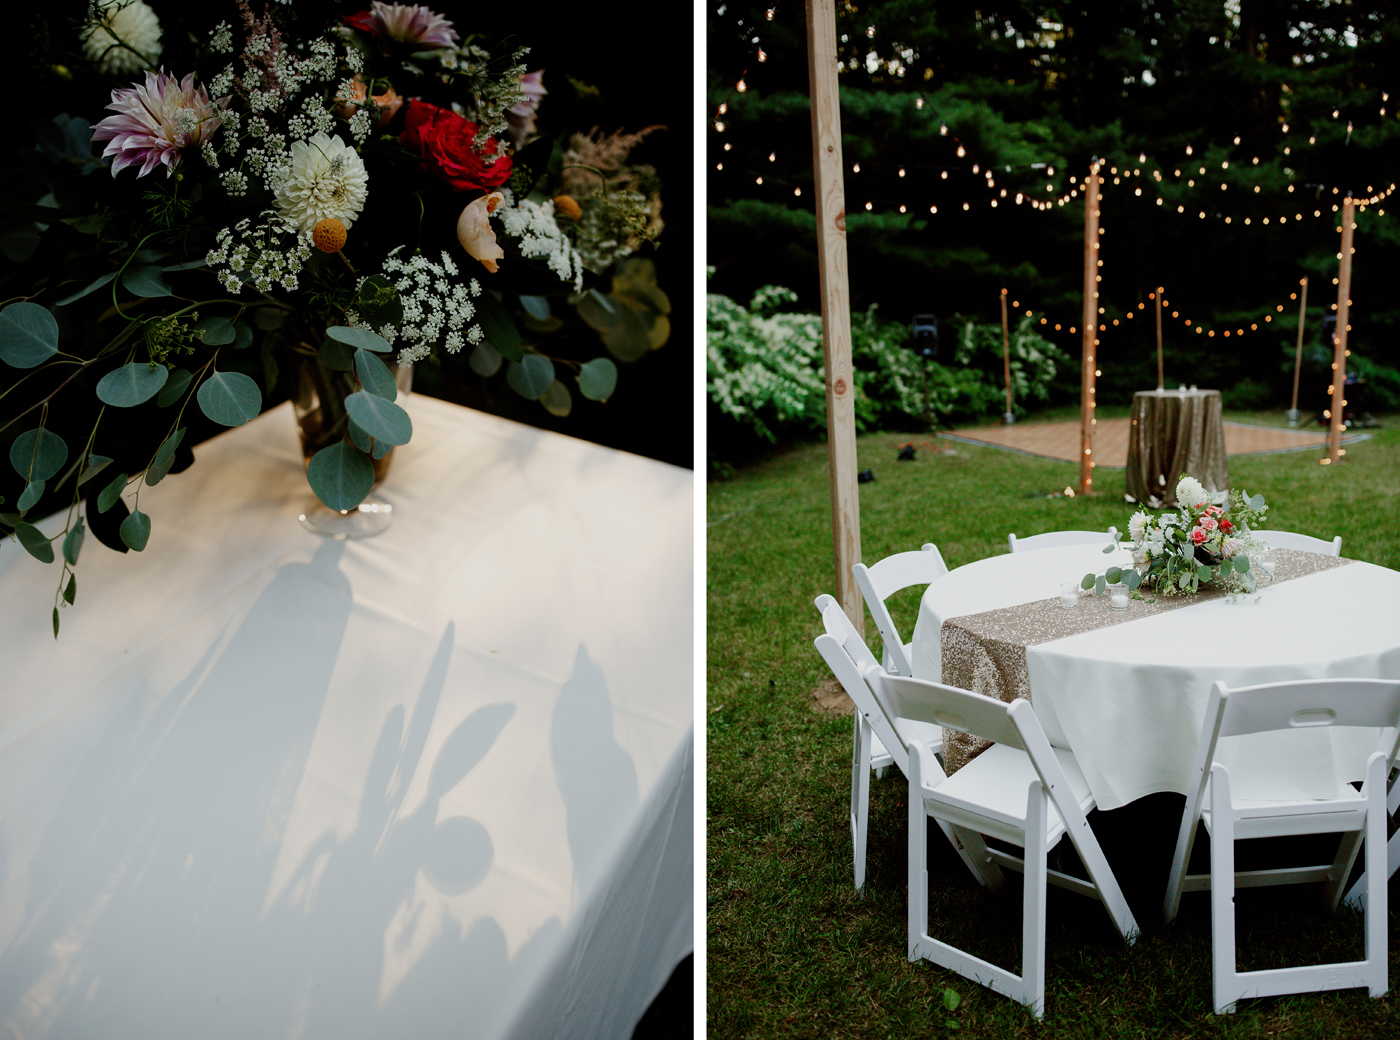 amandavanvels_backyardwedding_0481.jpg